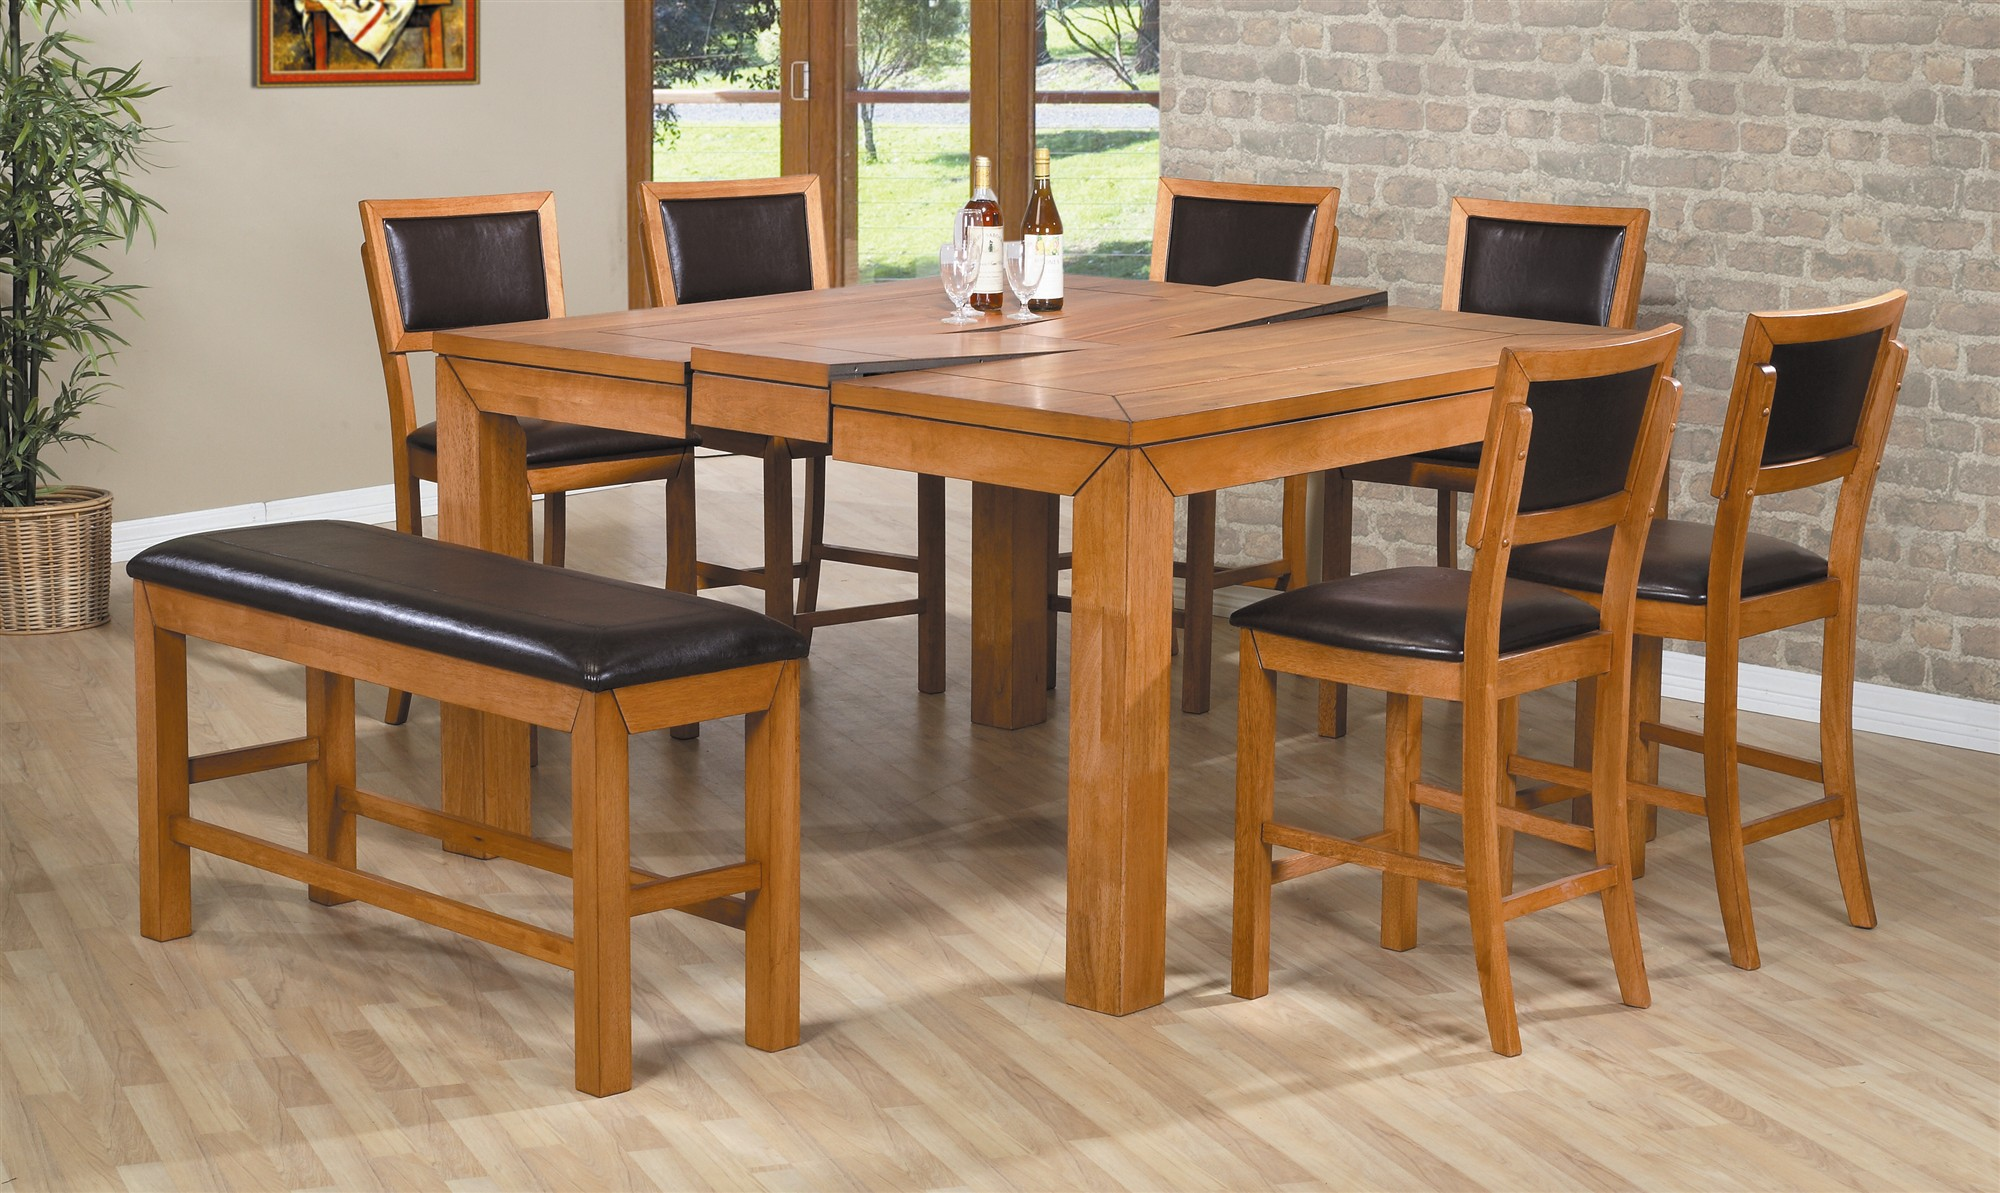 Modern wooden expandable dining table set on cream floor matched with bricked wall for interesting dining room decor ideas